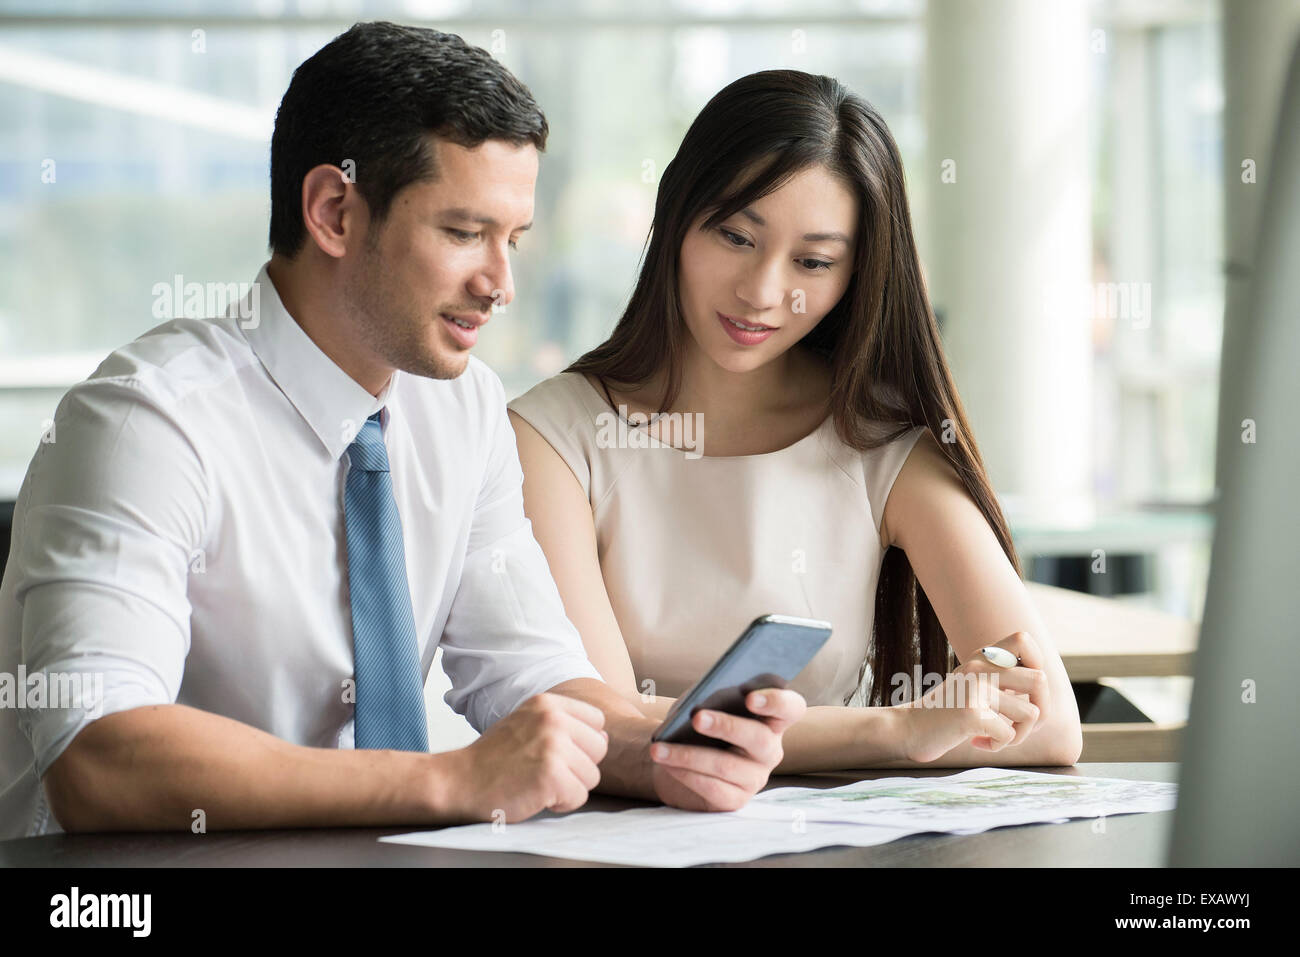 Colleagues looking at smartphone together in office Stock Photo